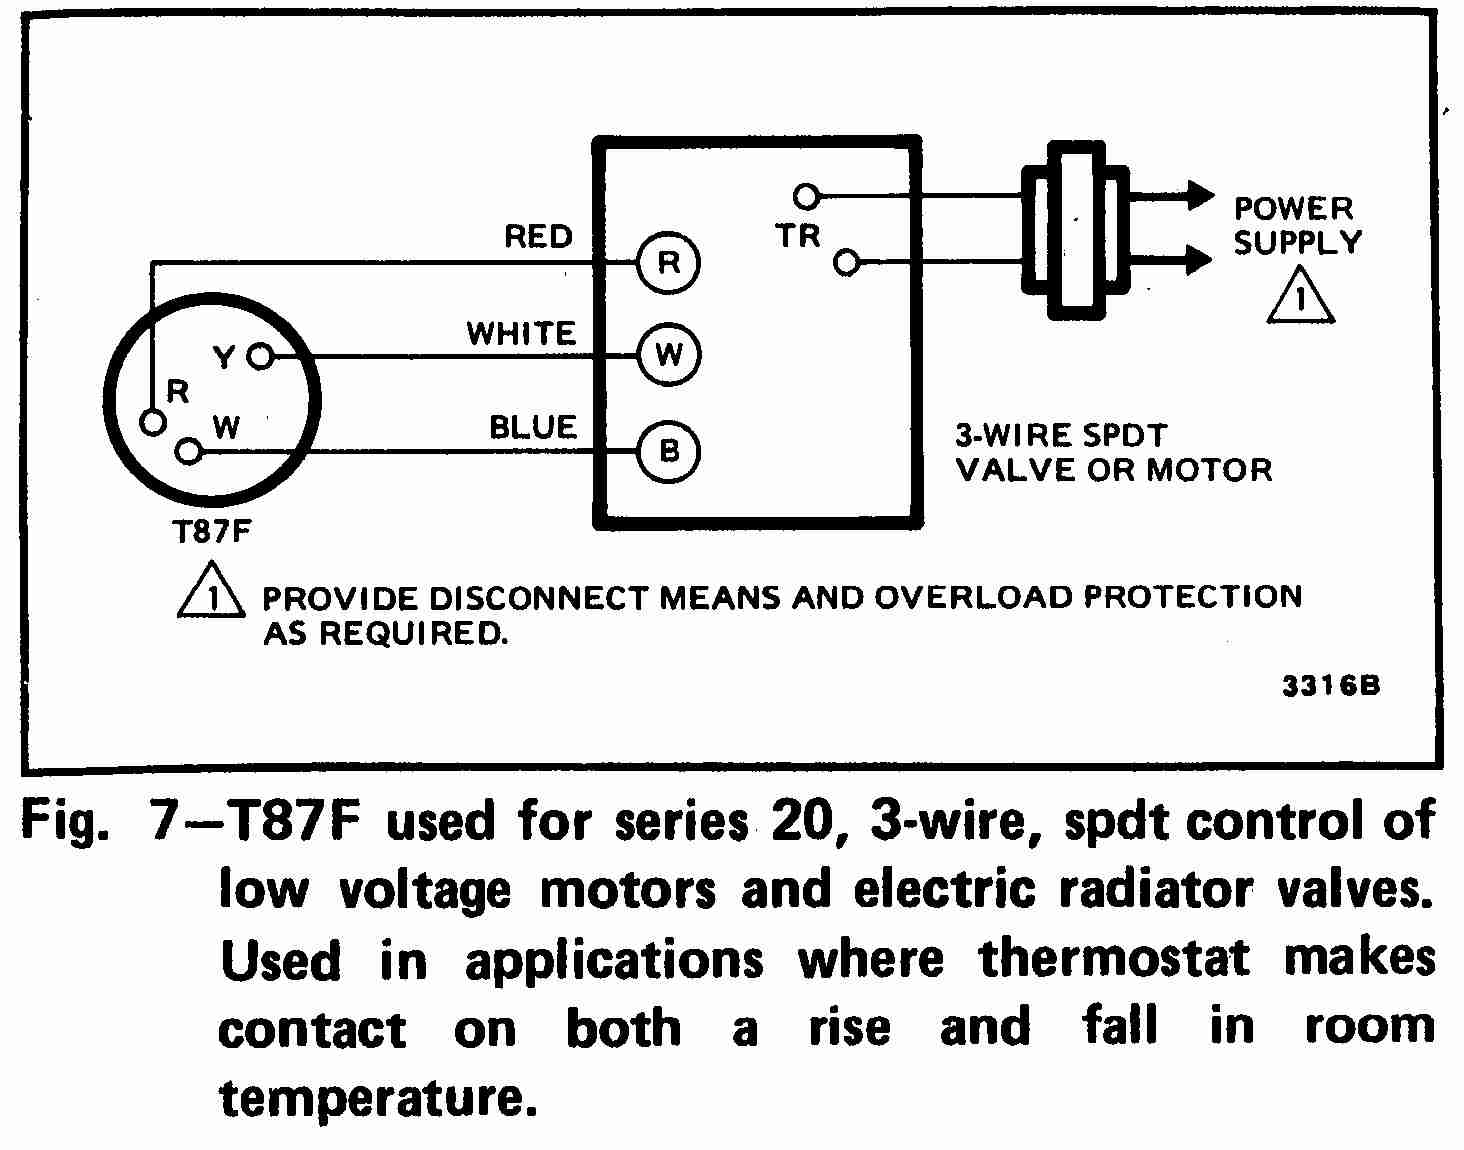 TT_T87F_0002_3W2_DJF thermostat wiring diagram (6 wires) on thermostat images free,6 Wire Thermostat Wiring Code